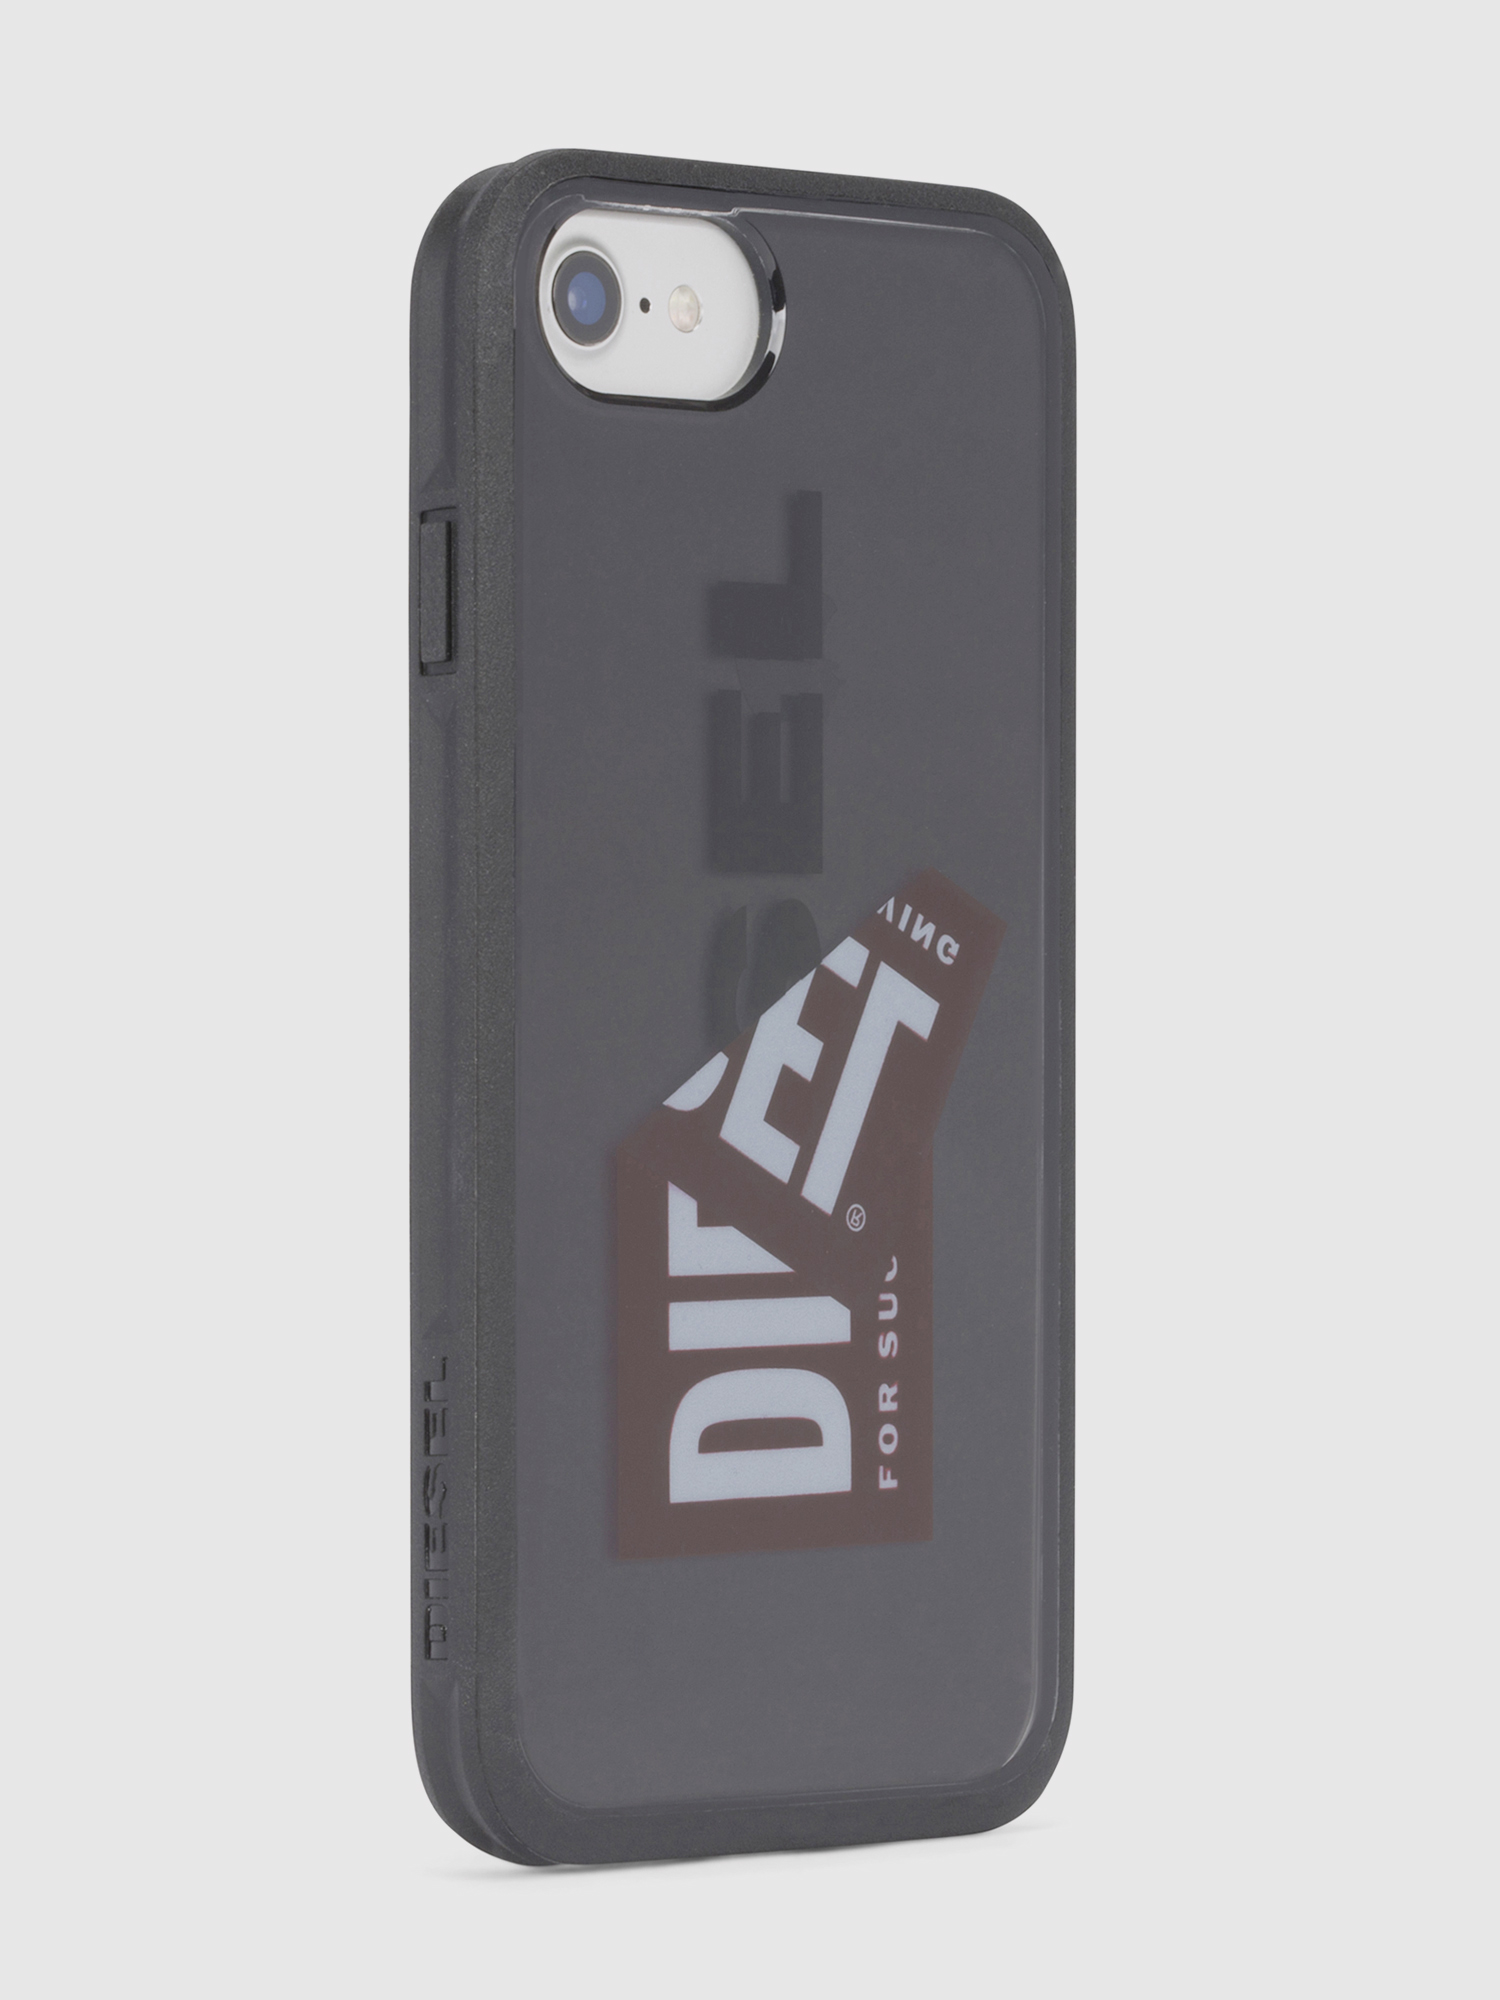 Diesel - STICKER IPHONE 8 PLUS/7 PLUS/6s PLUS/6 PLUS CASE,  - Coques - Image 6